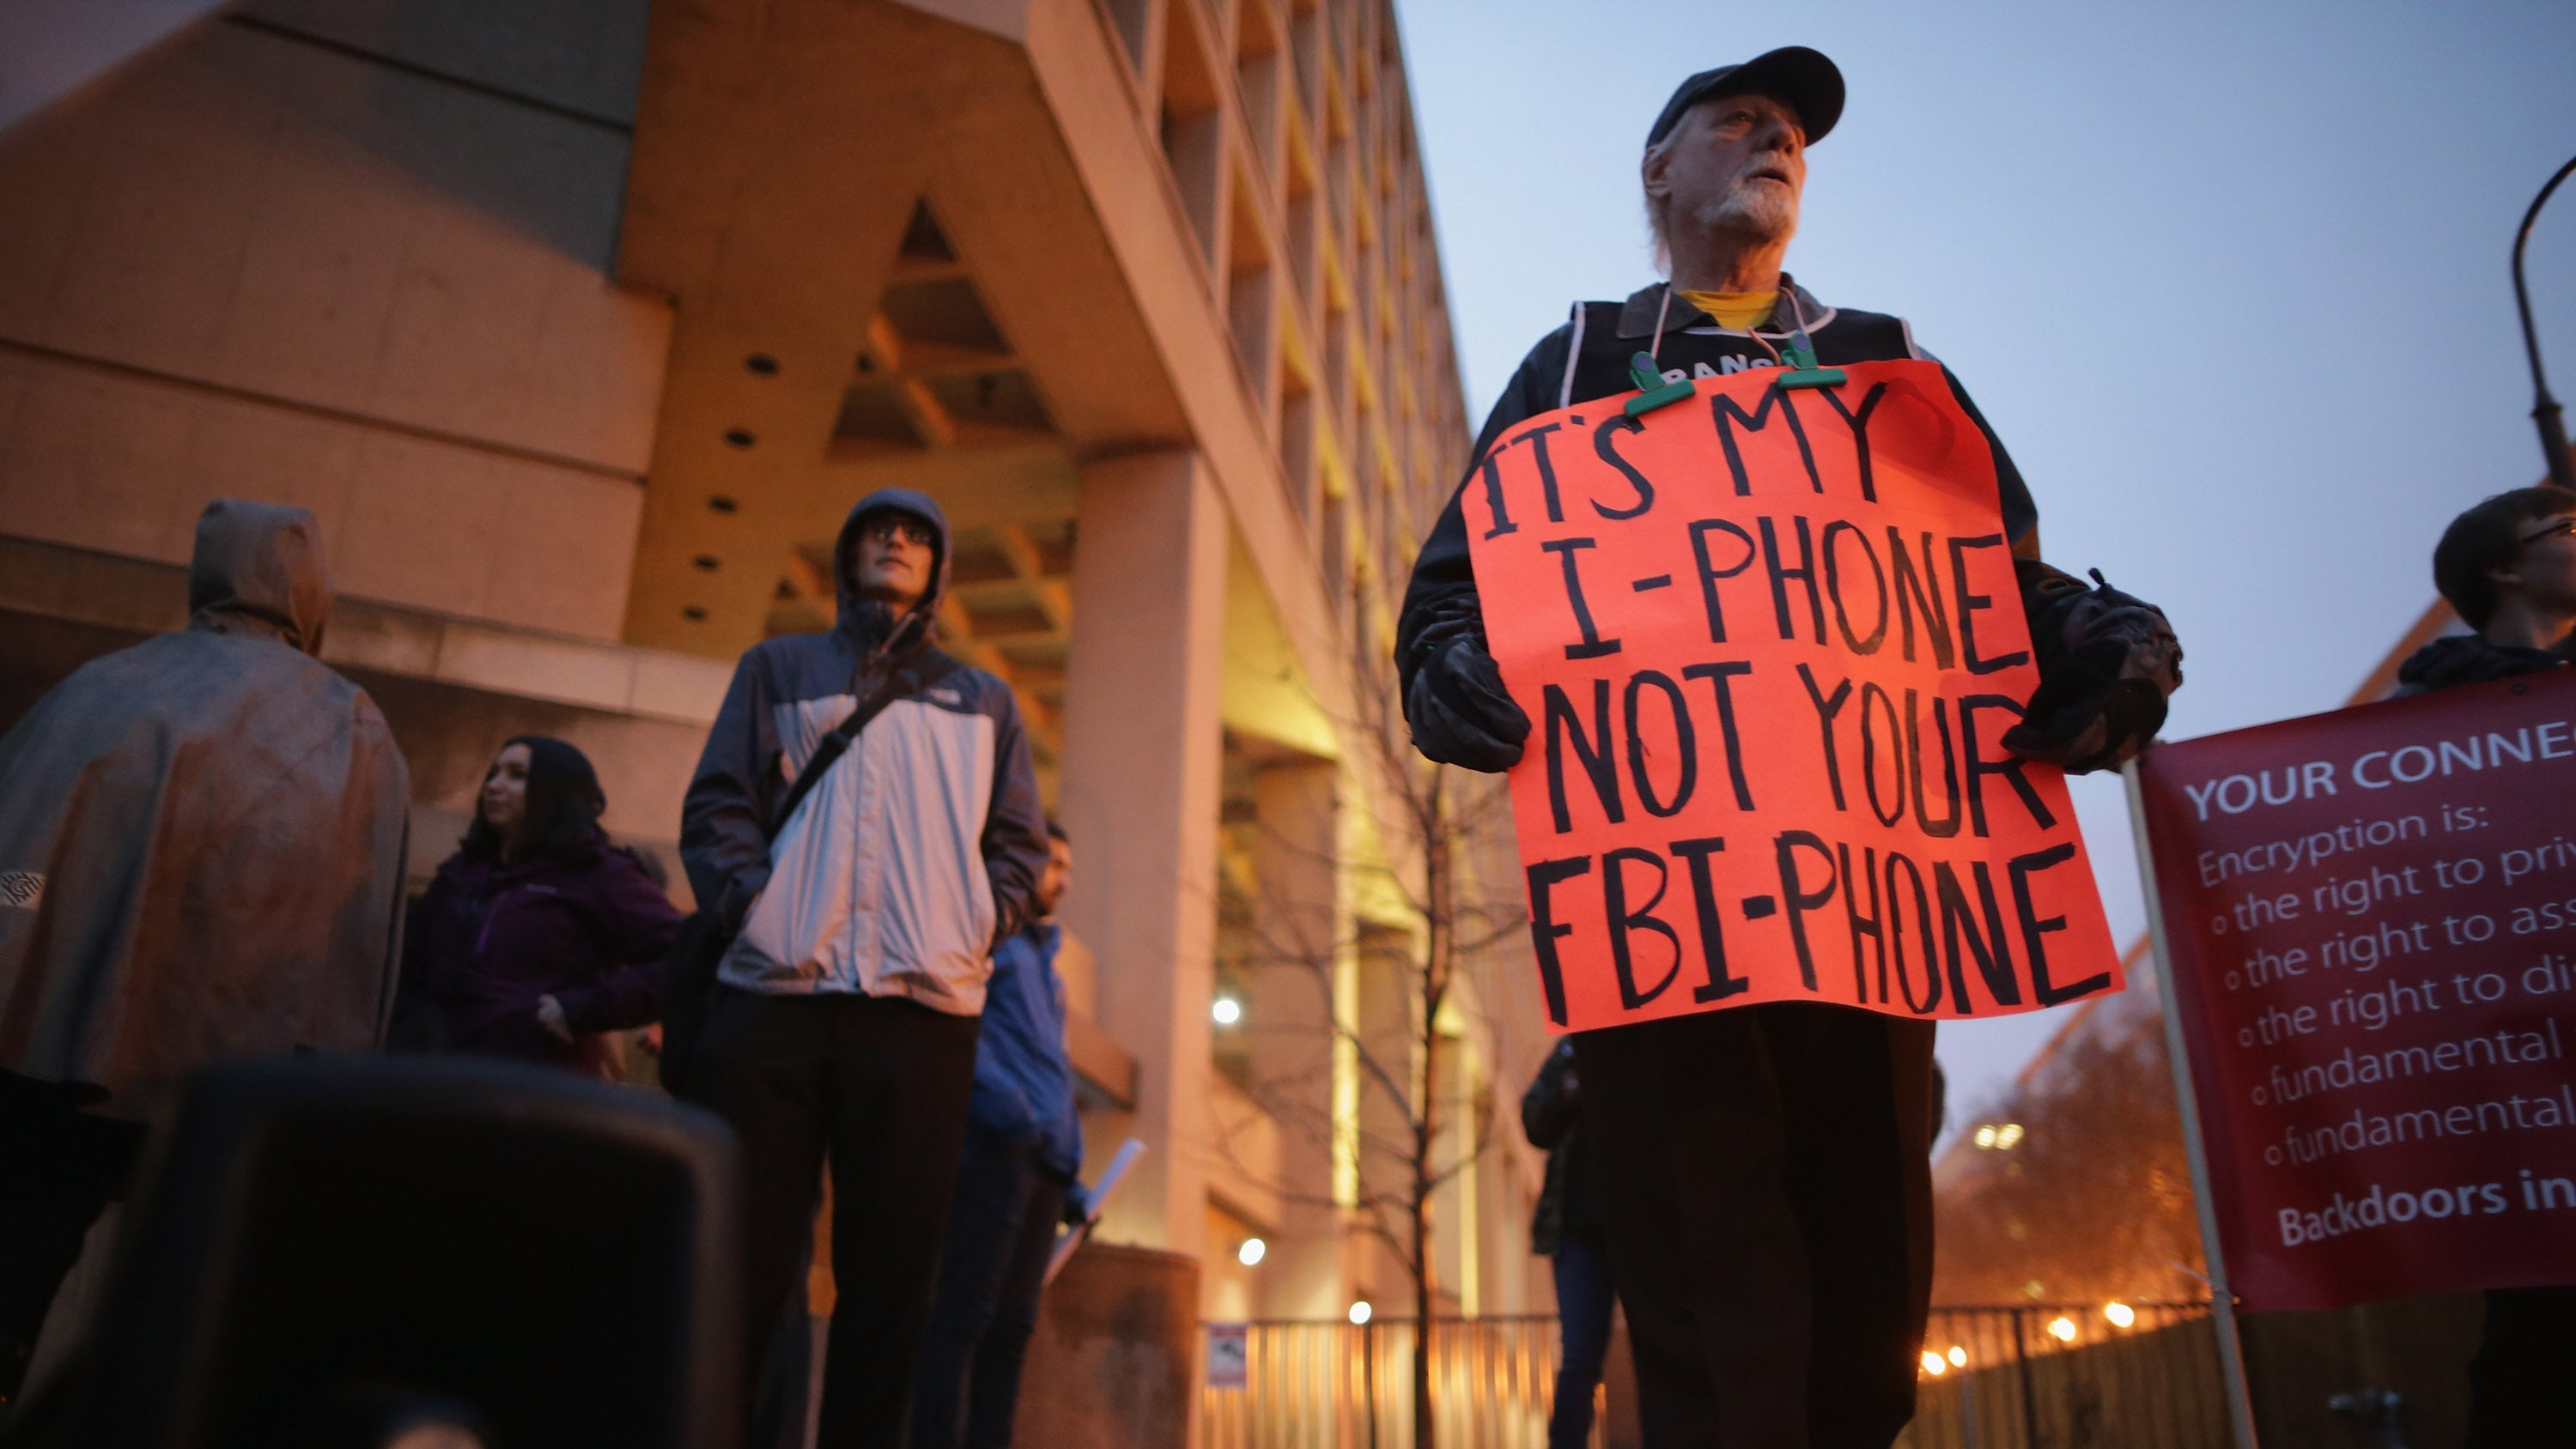 Apple Fans Don't Actually Care About the Whole FBI iPhone Thing